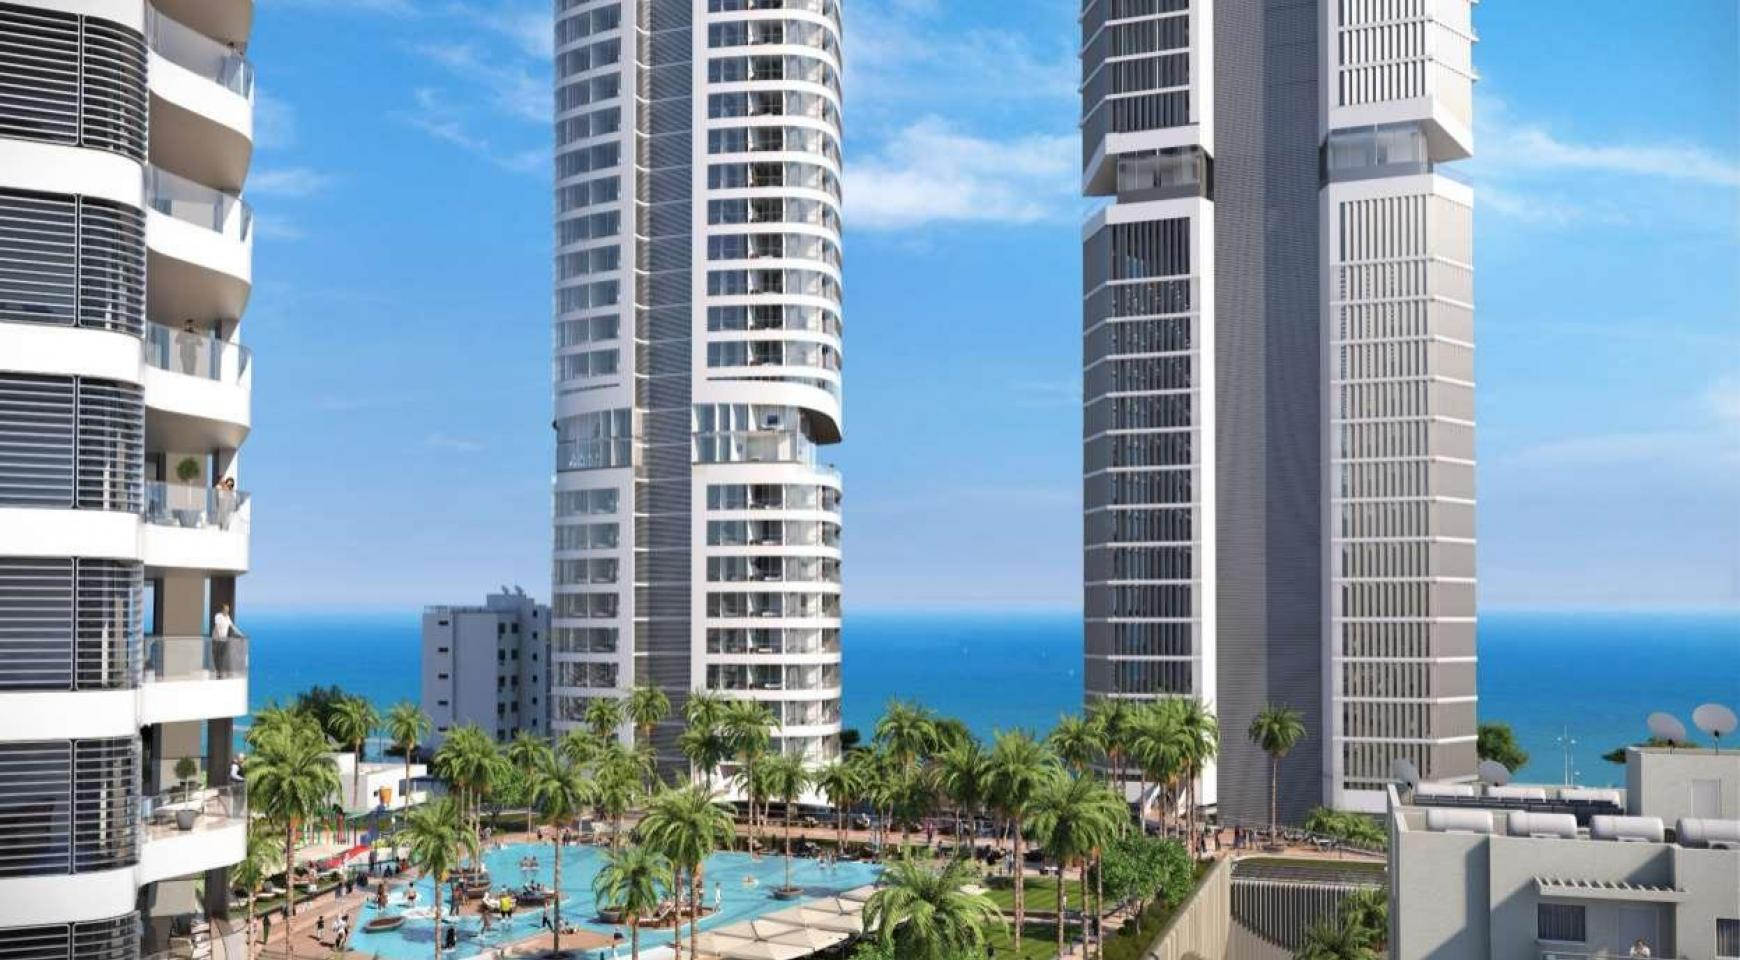 Luxury 2 Bedroom Apartment in a New Project by the Sea in the City Centre - 2